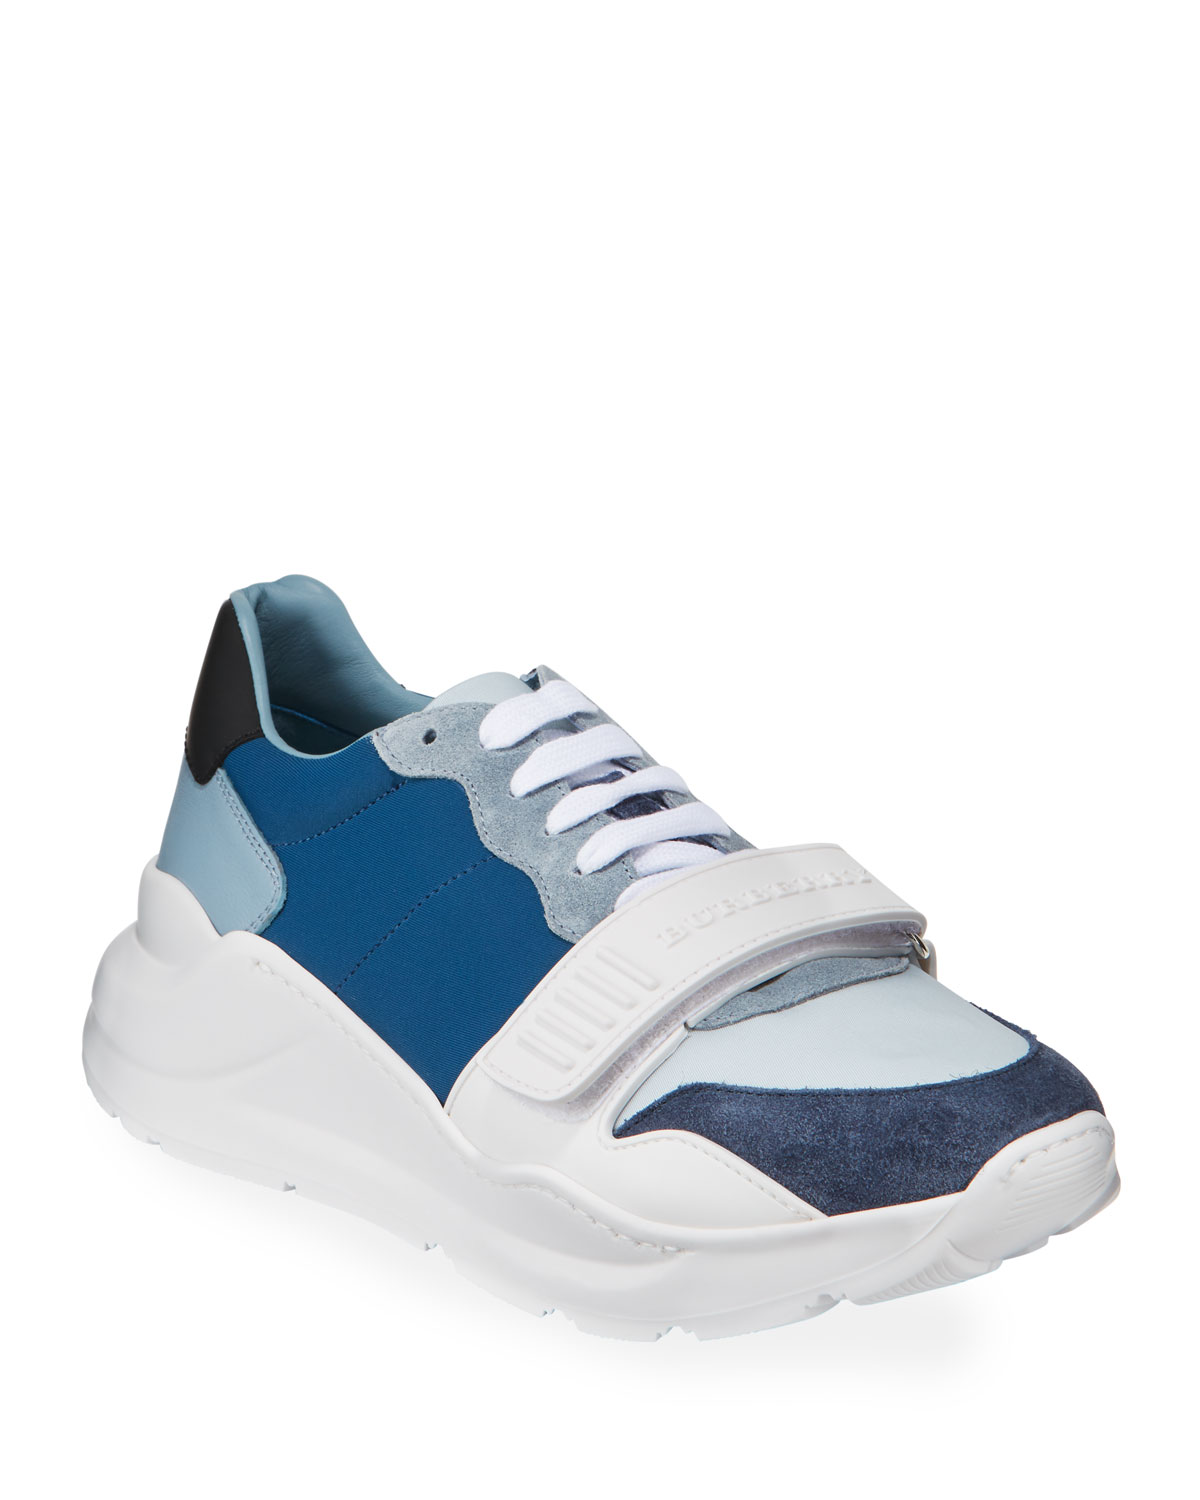 903e0d37ad9146 Burberry Men's Regis Neoprene Low-Top Sneakers w/ Exaggerated Sole, Blue